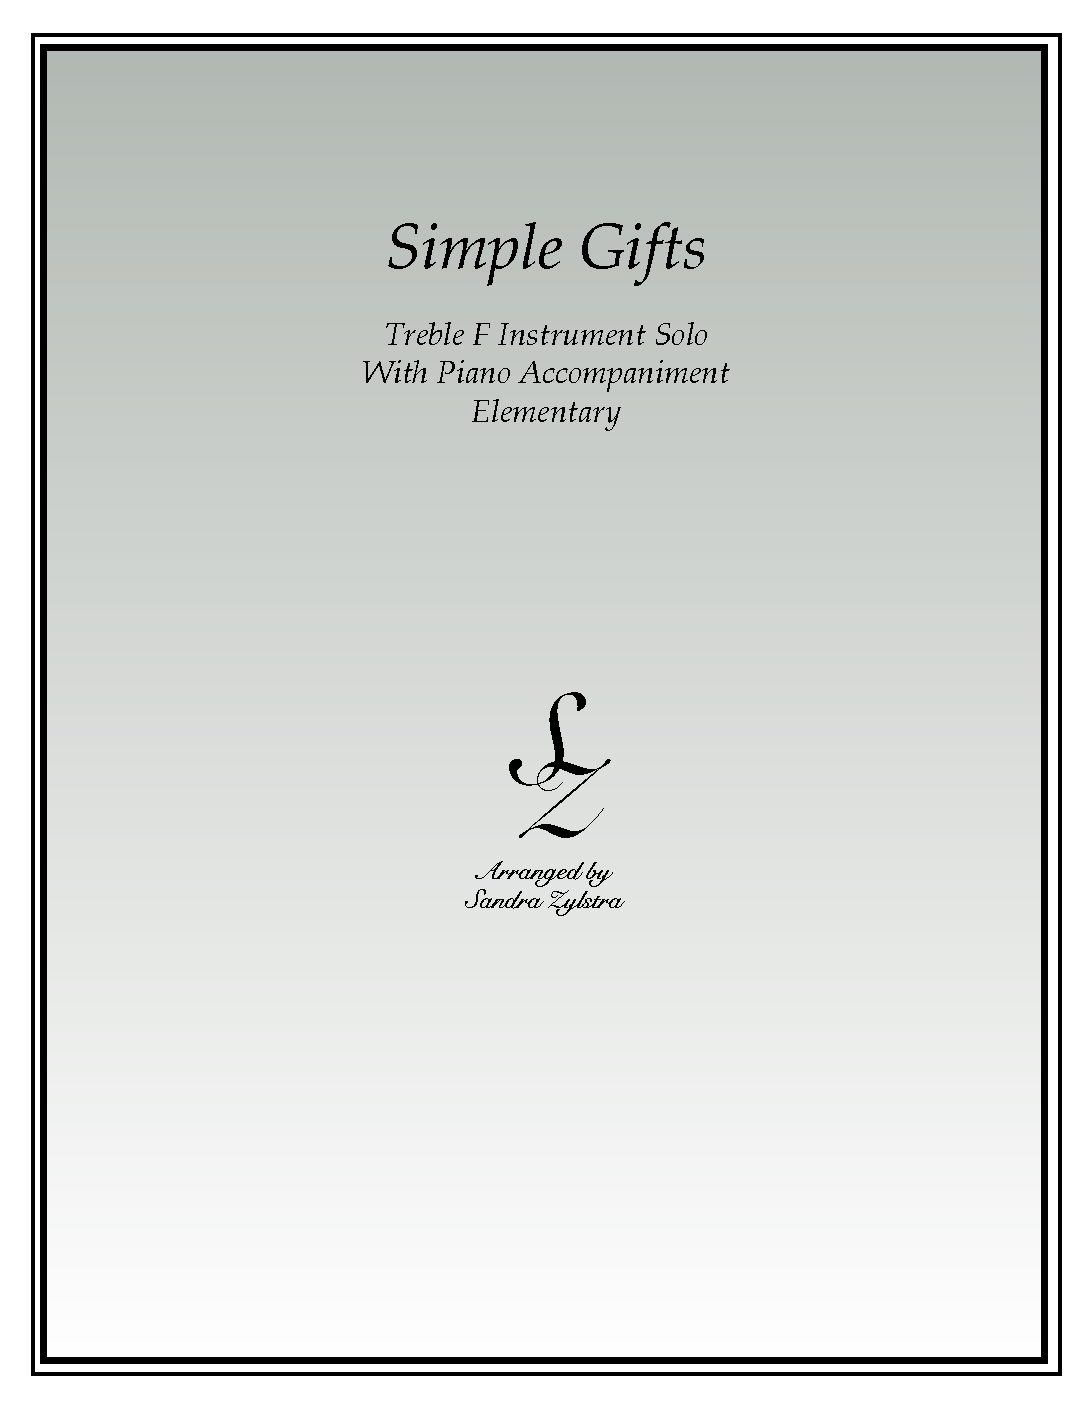 Simple Gifts -Treble F Instrument Solo